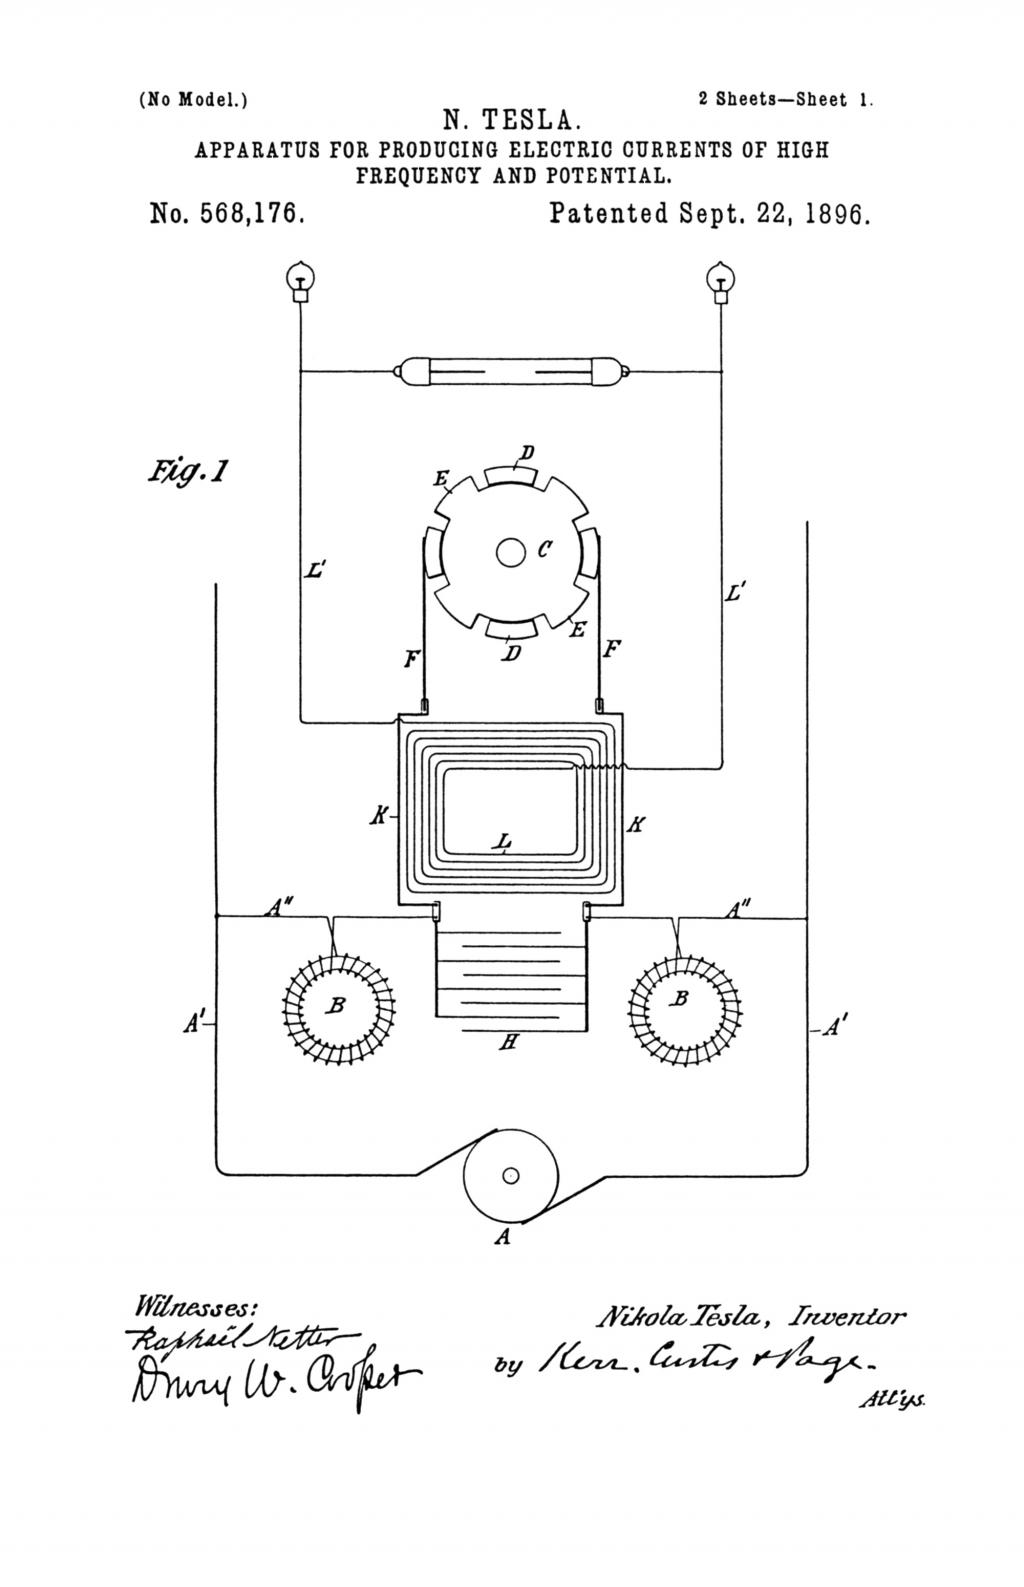 Nikola Tesla U.S. Patent 568,176 - Apparatus for Producing Electrical Currents of High Frequency and Potential - Image 1